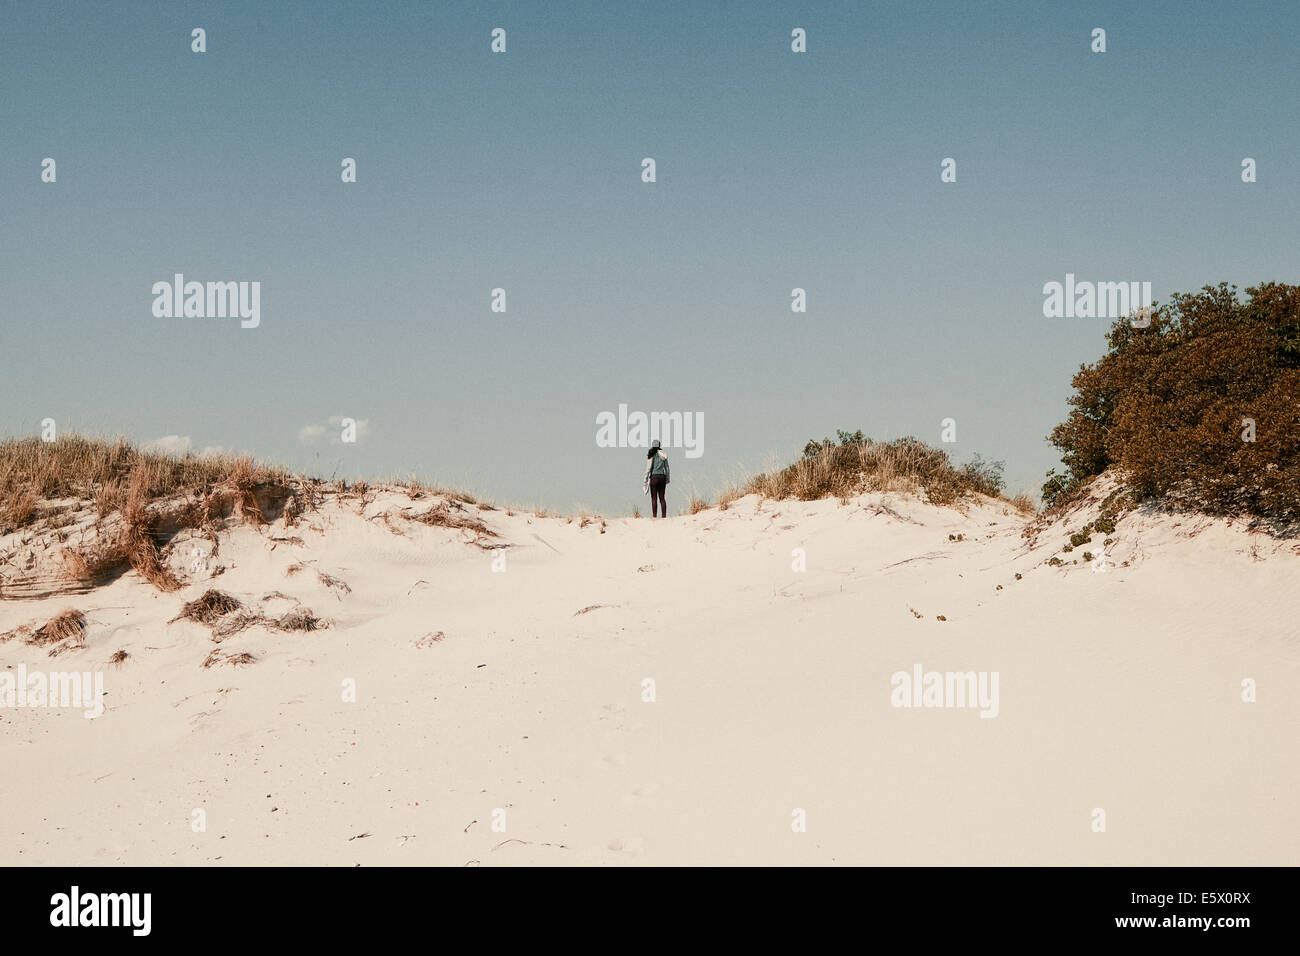 Mid adult woman standing on sand dunes, Jones beach, New York State, USA - Stock Image